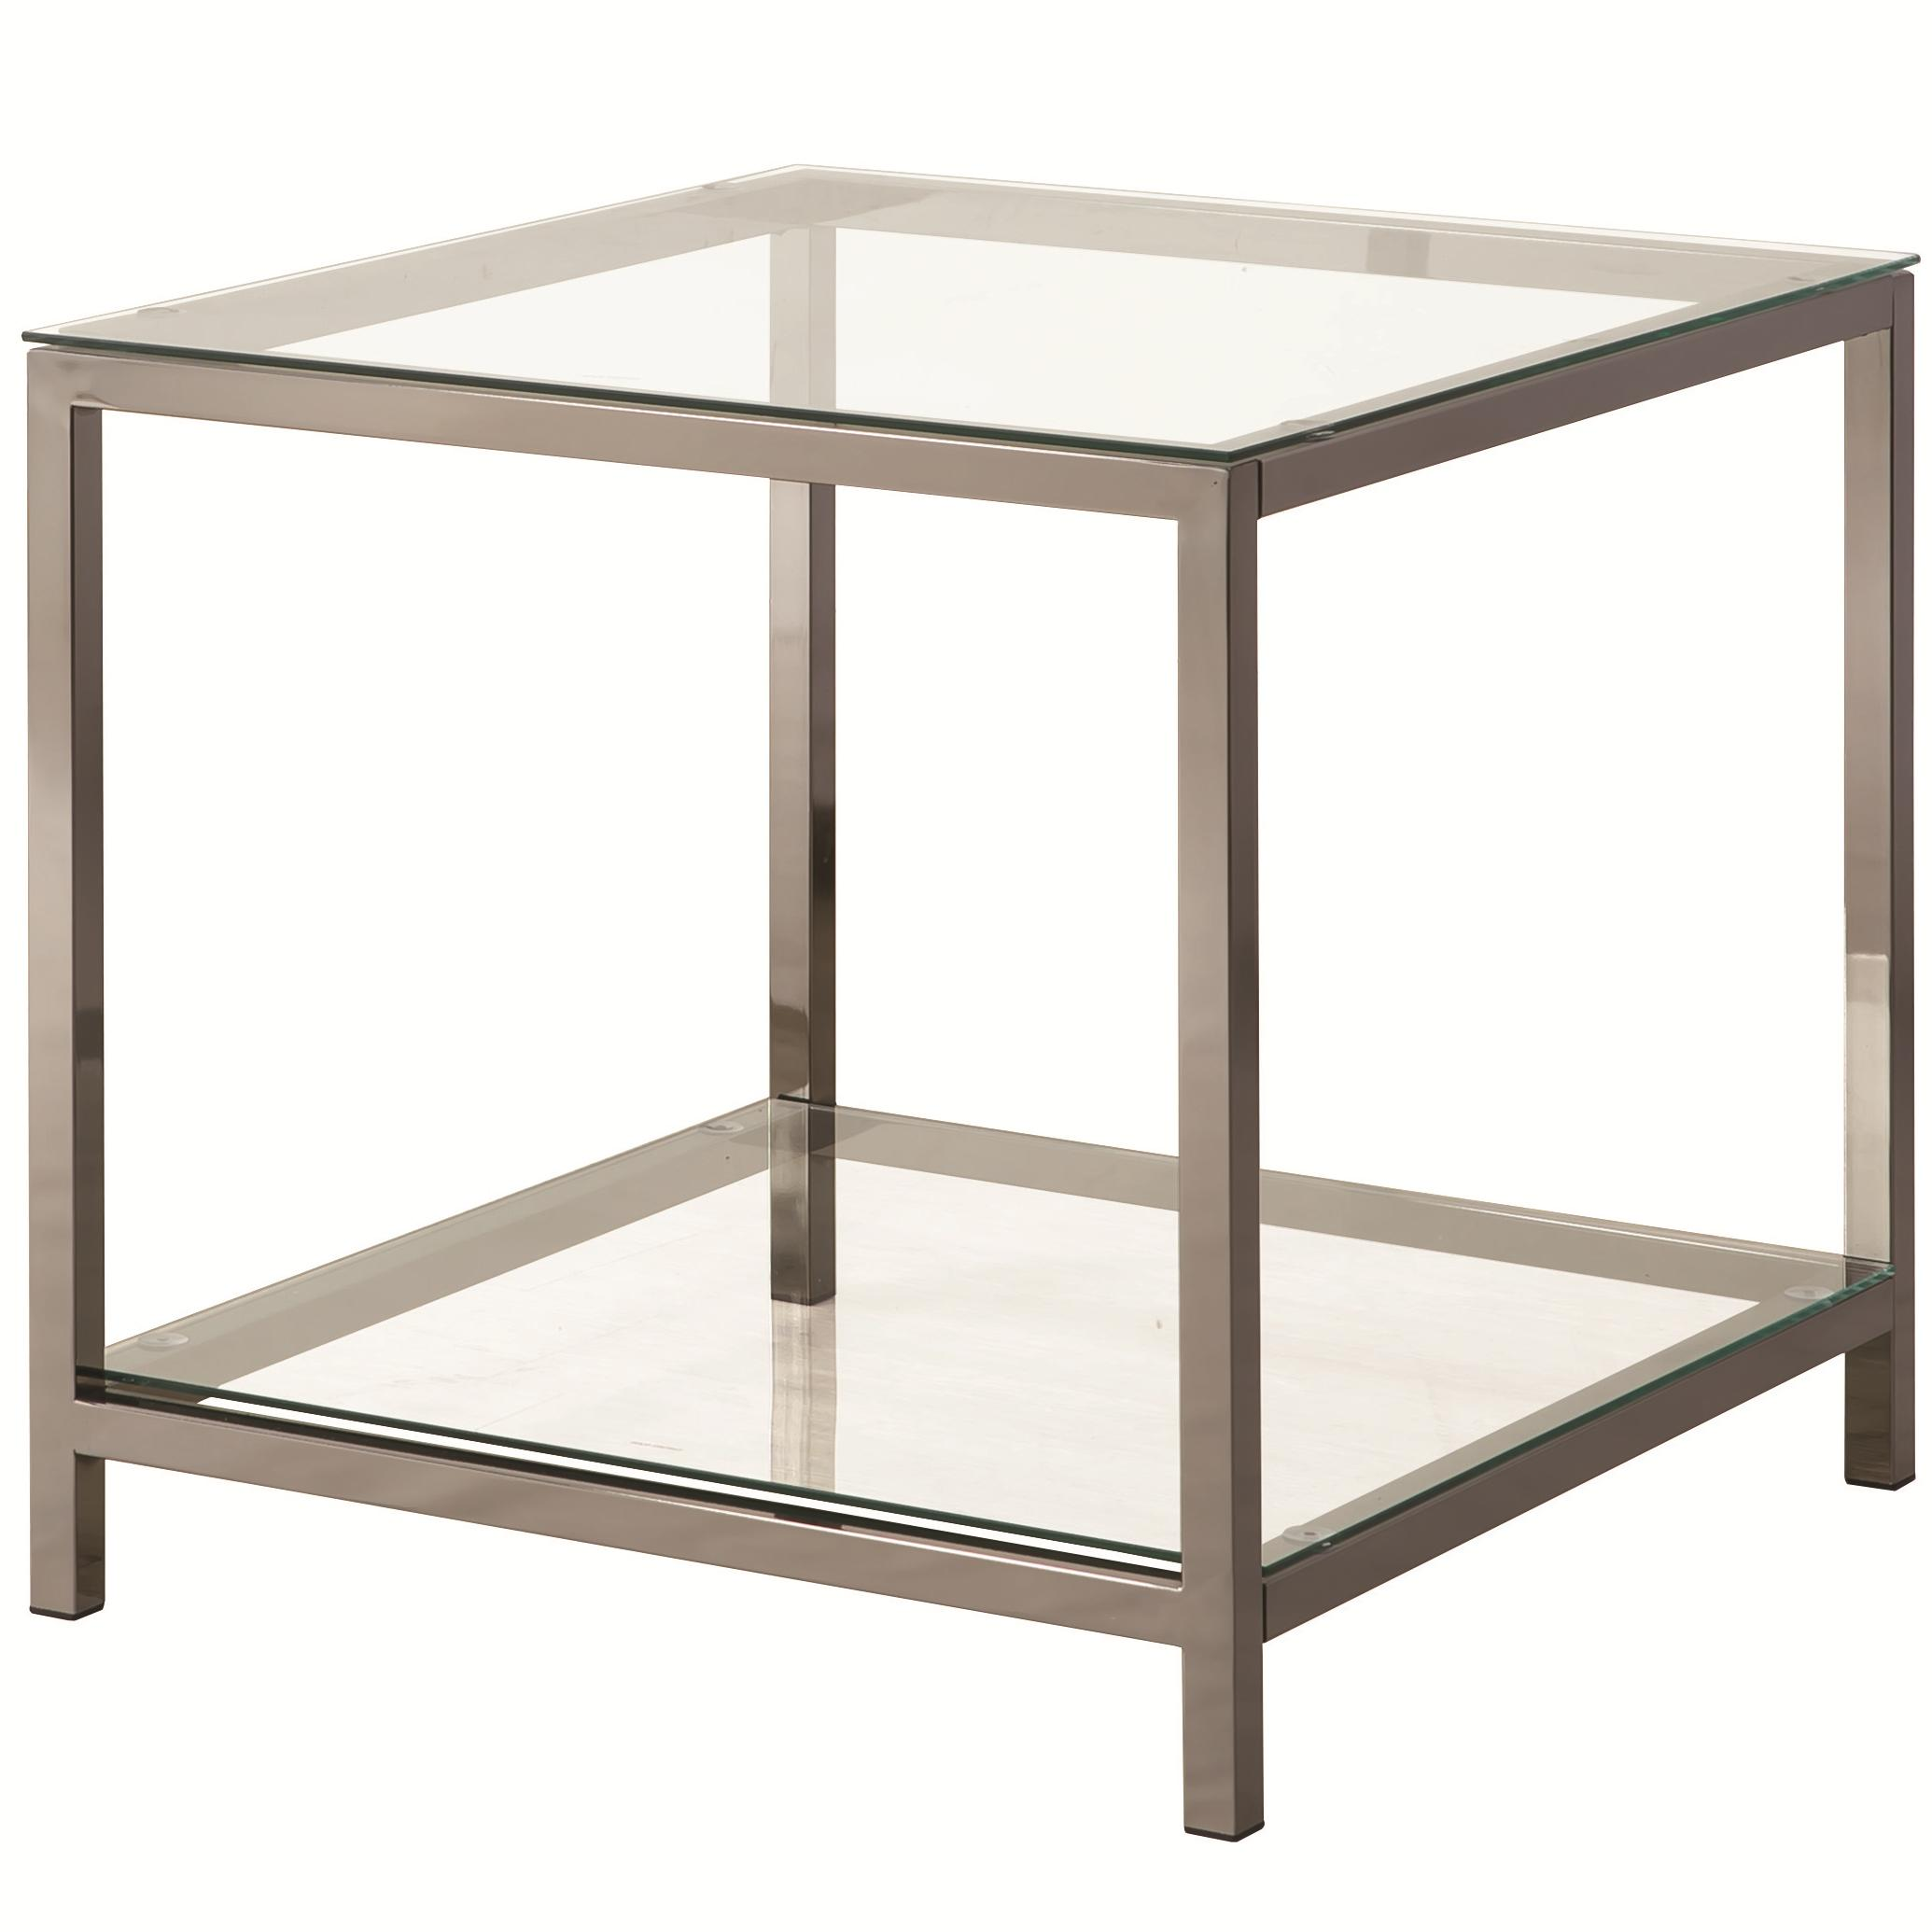 Coaster 72022 End Table - Item Number: 720227